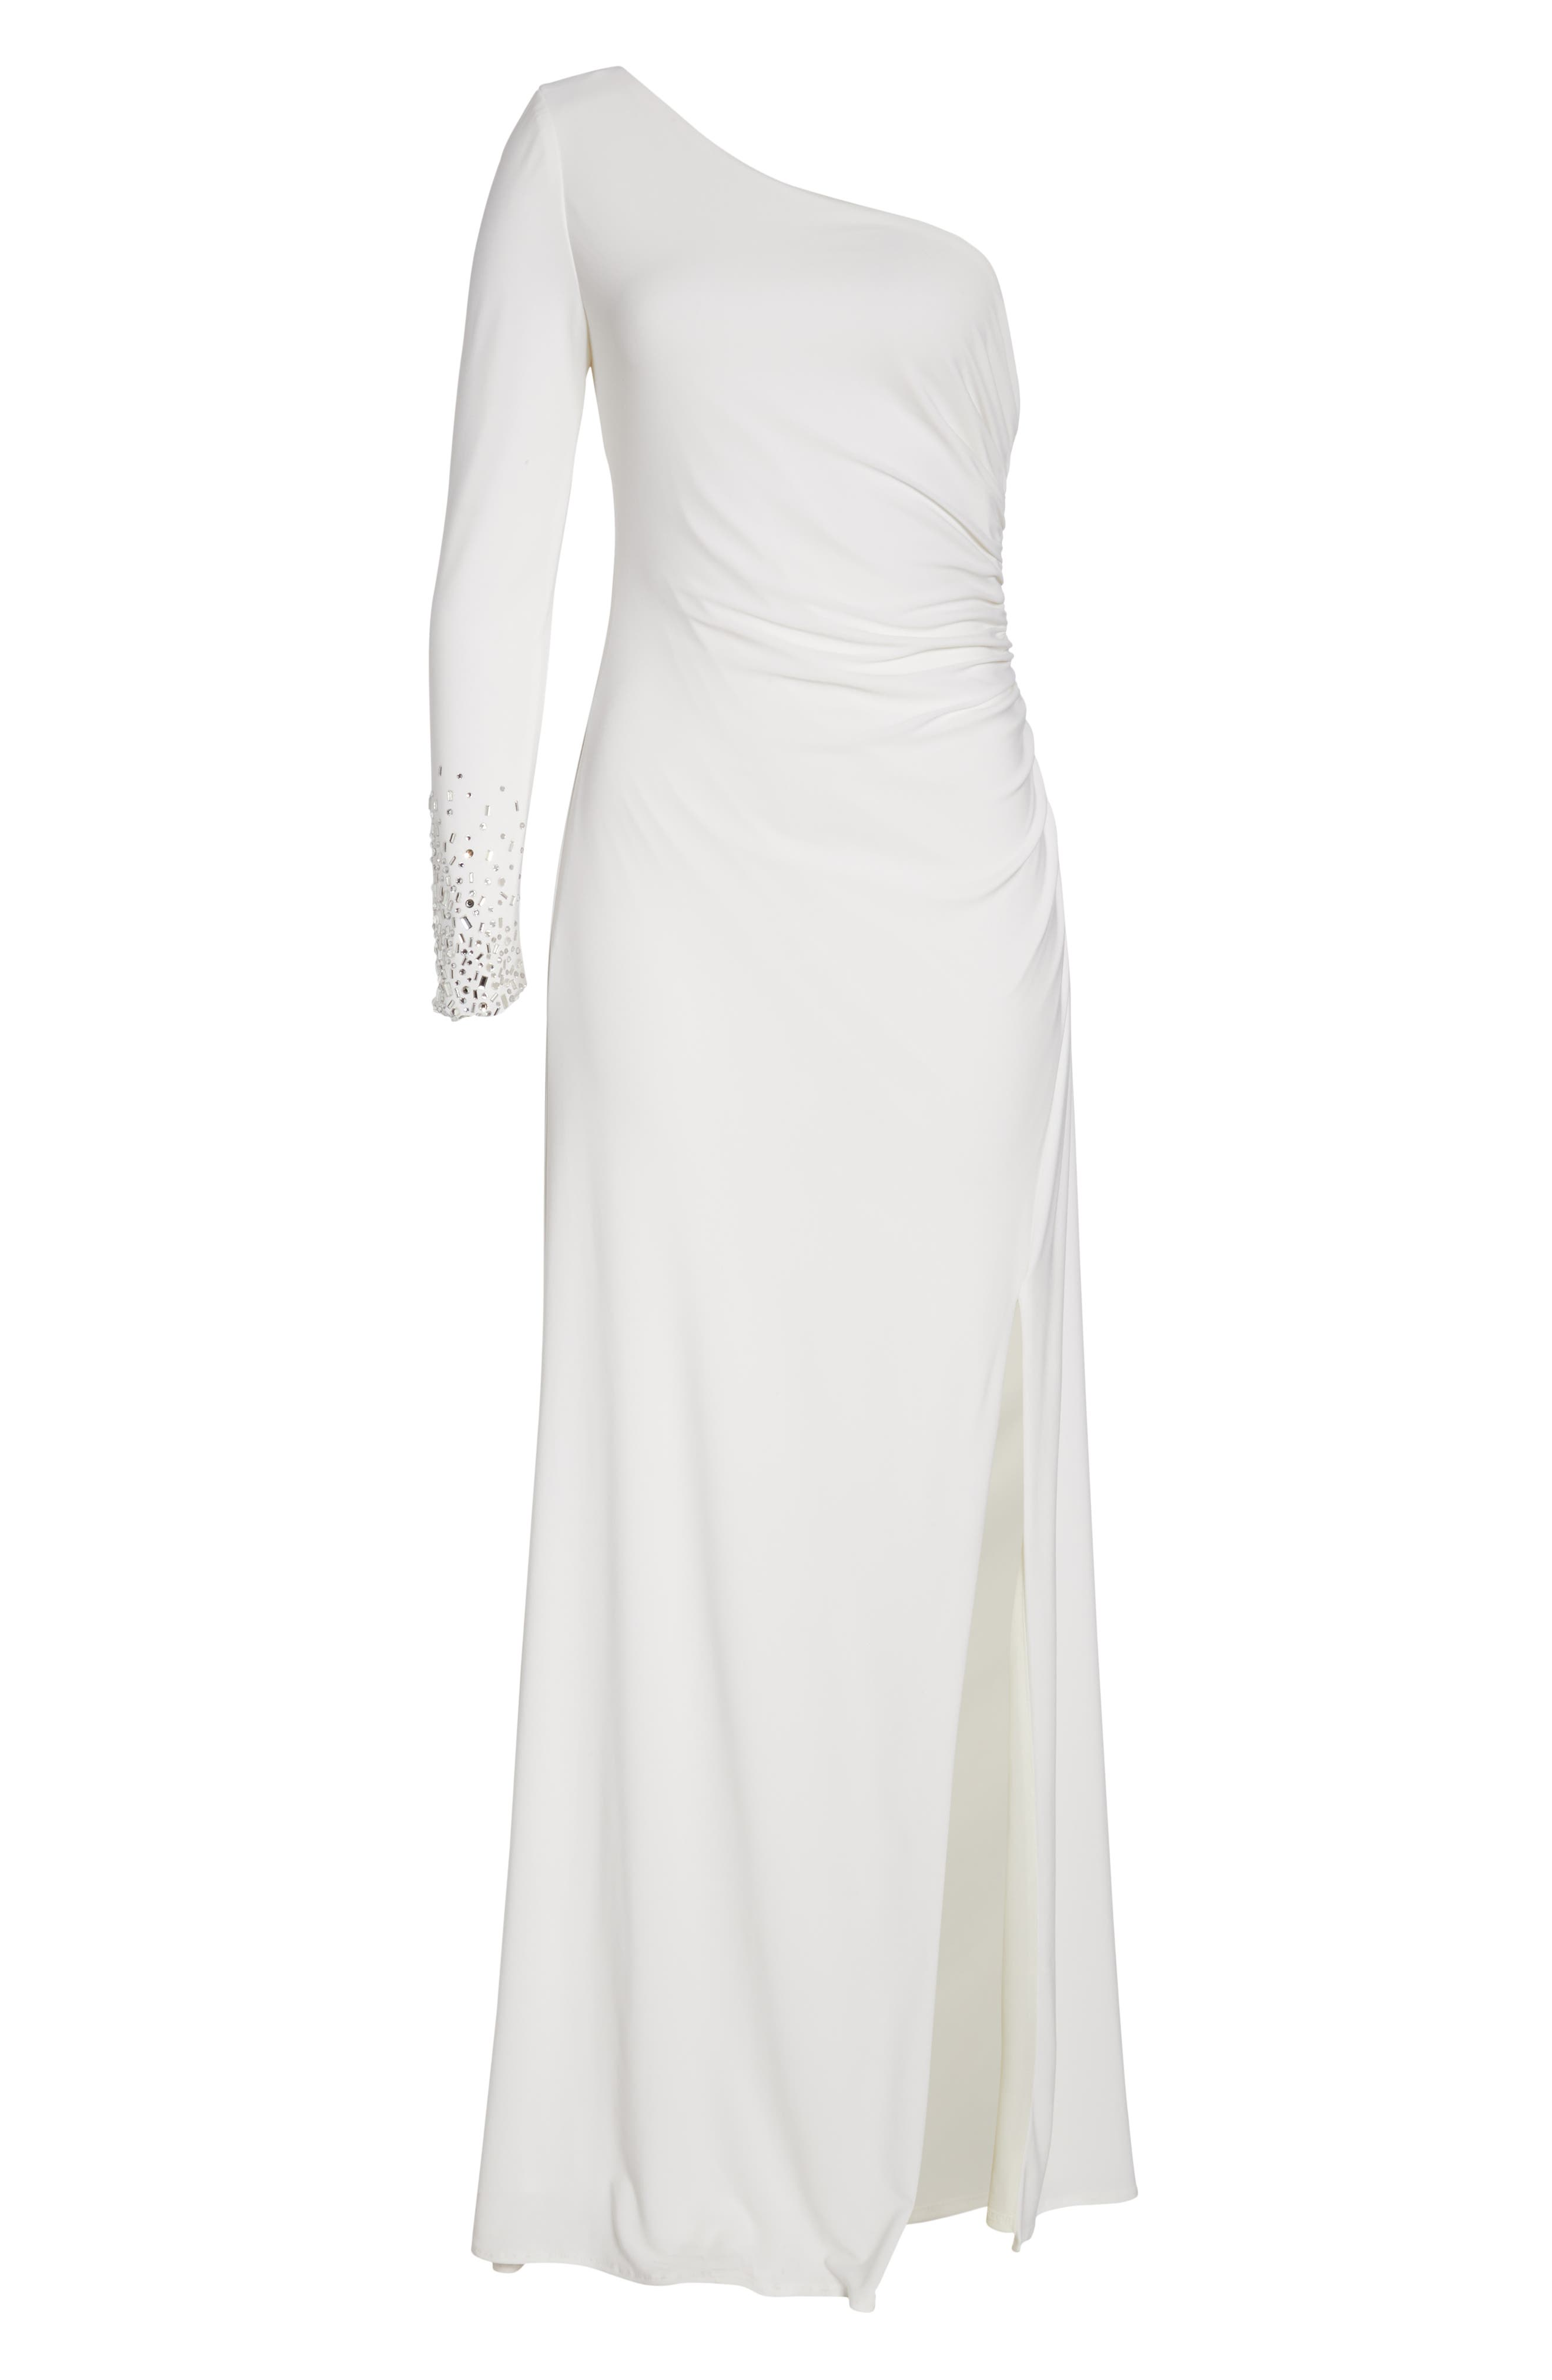 One-Sleeve Side Ruched Evening Dress,                             Alternate thumbnail 7, color,                             IVORY